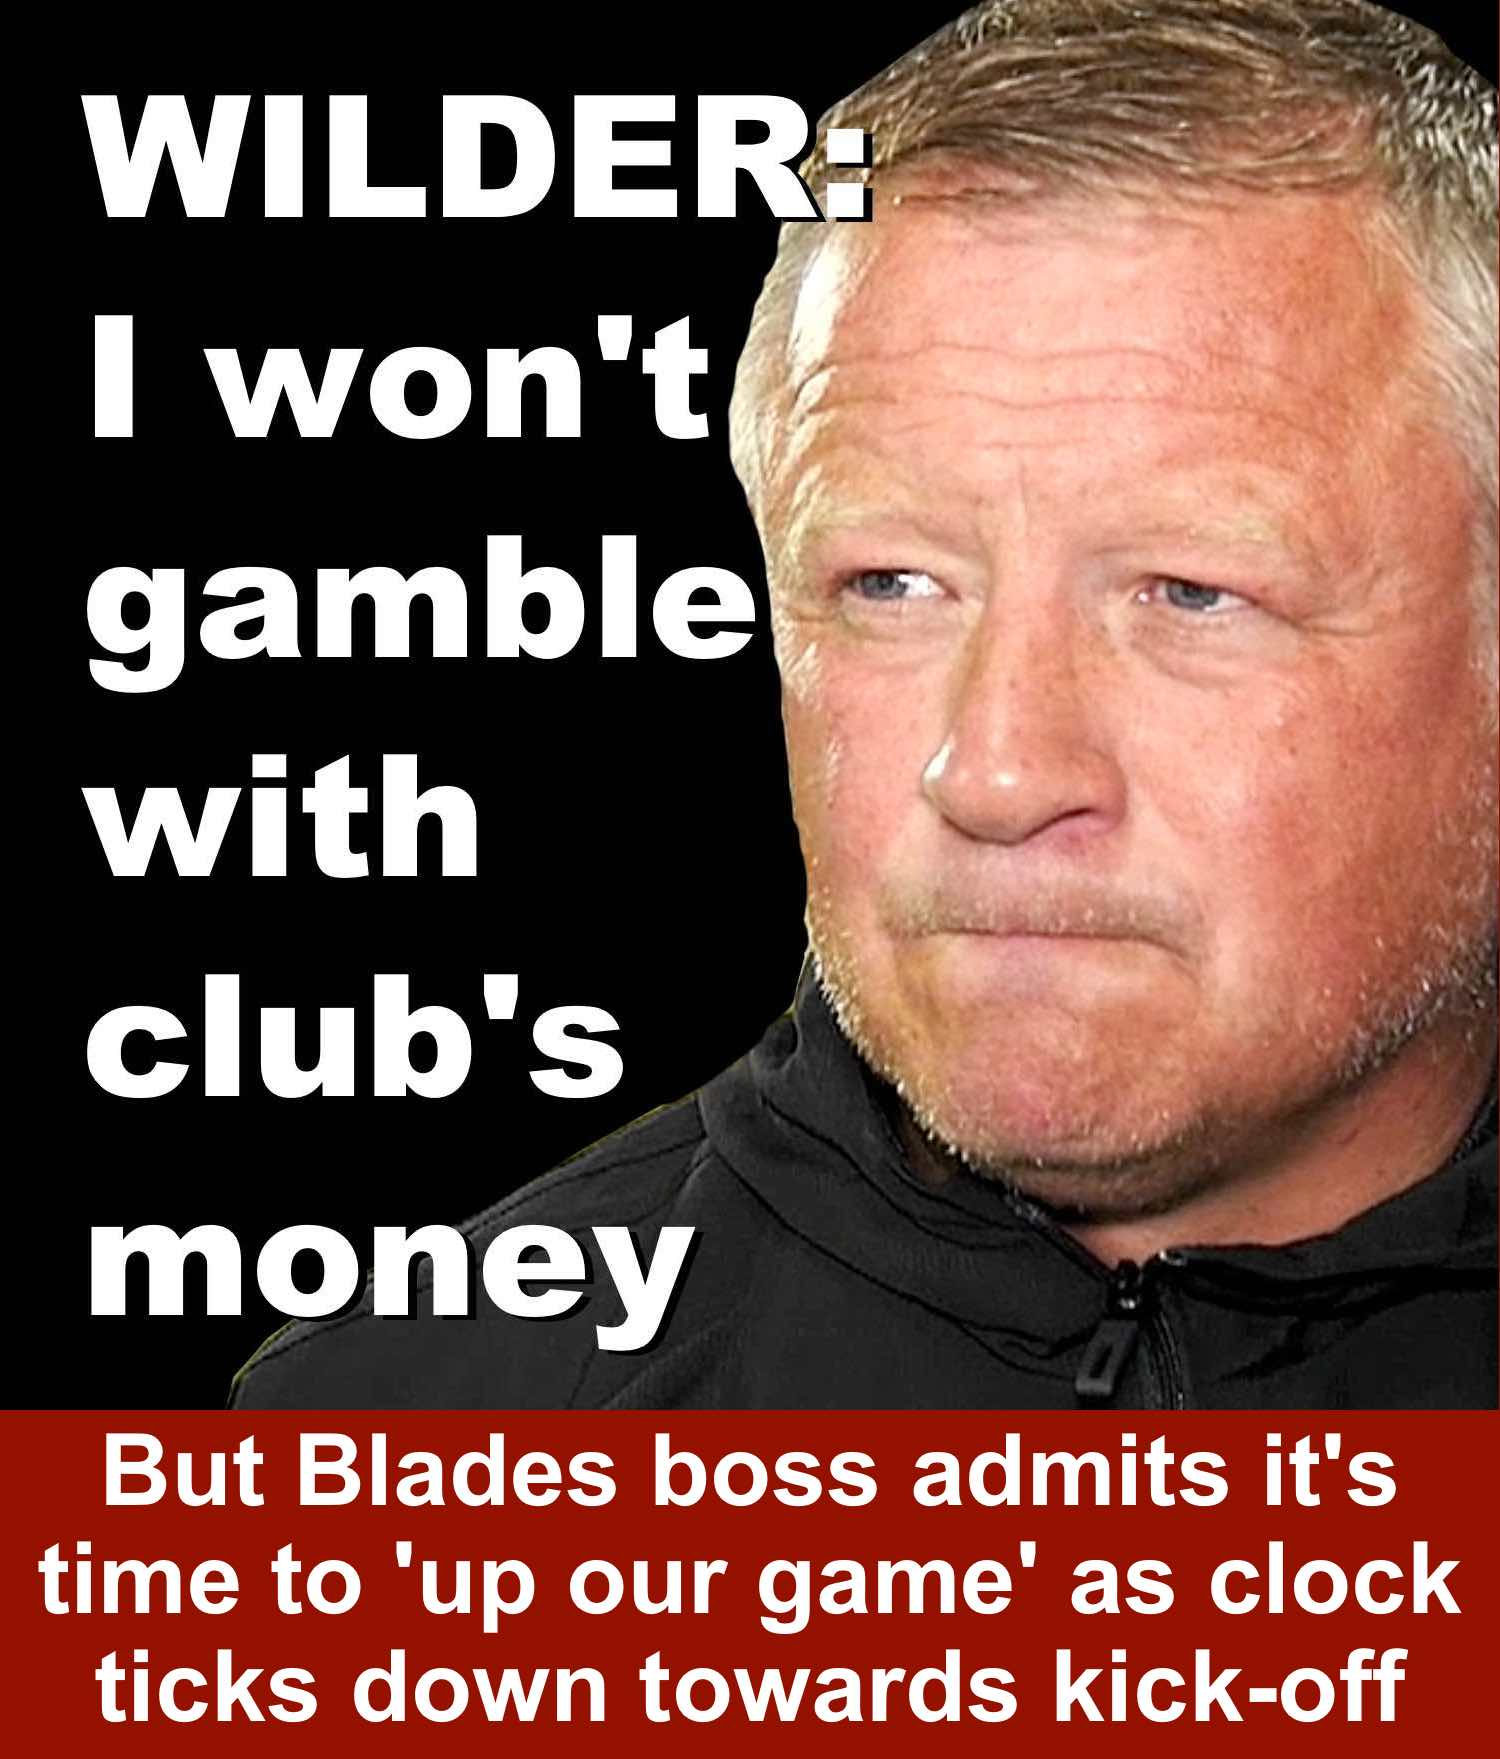 Sheffield United boss Chris Wilder refuses to gamble with Blades money in transfer market